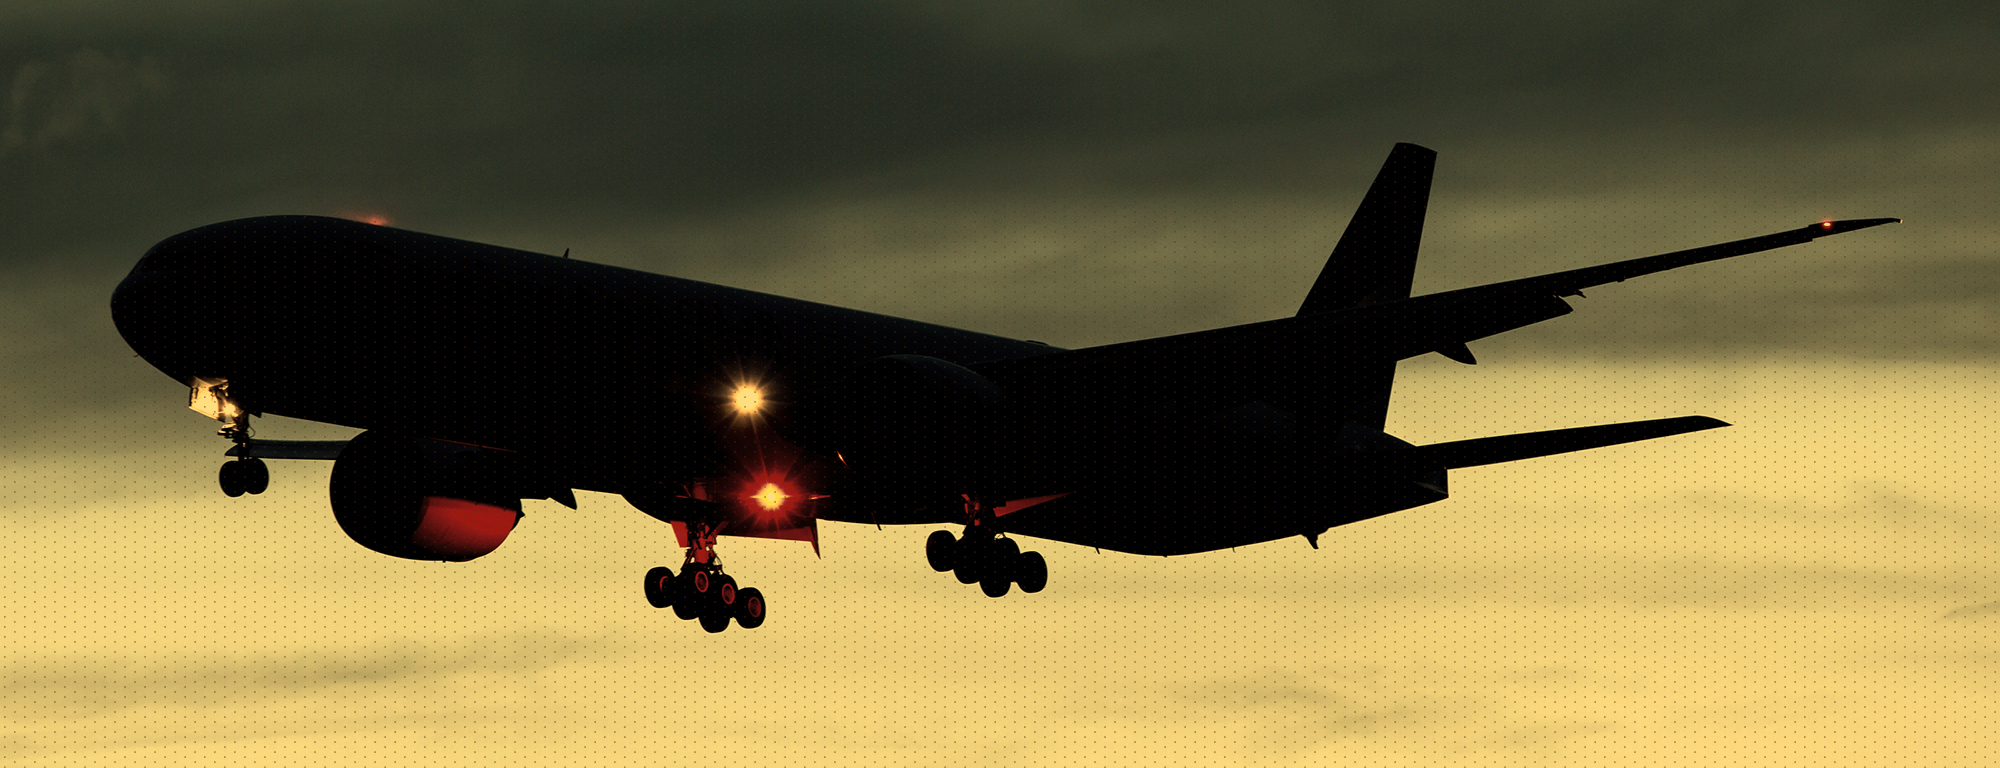 Airplane with landing gears down and lights on